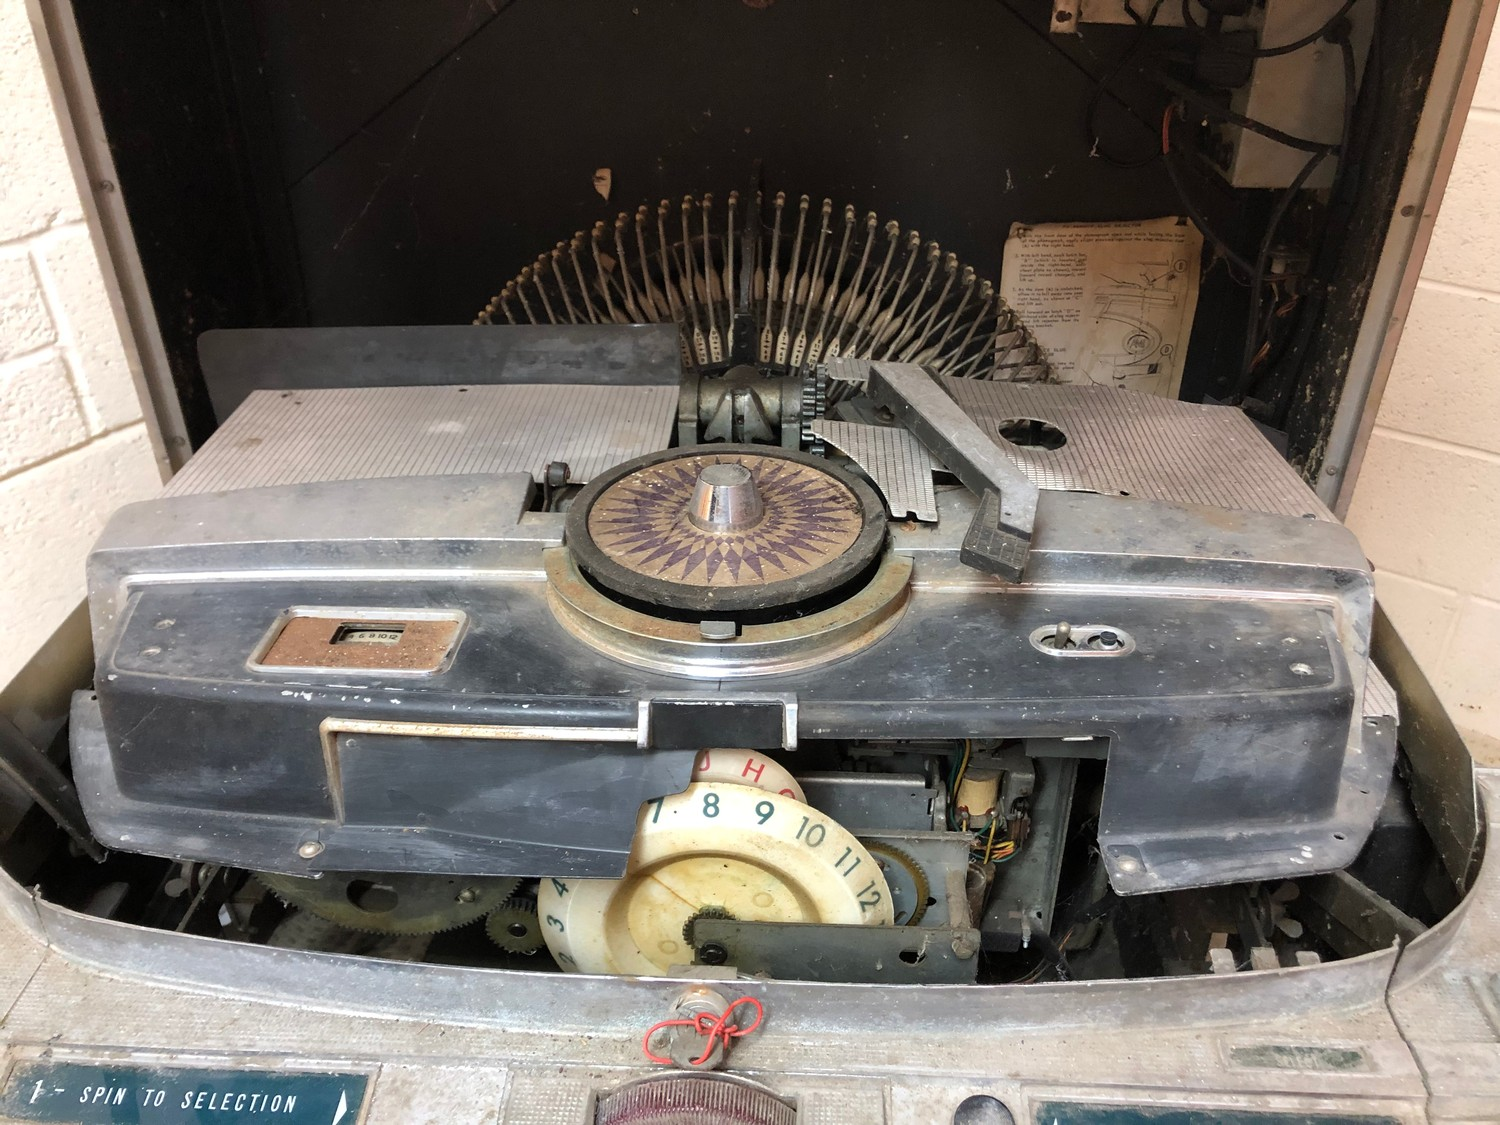 """Rare 1950s Bal-AMi 200 Jukebox in """"Barn Find"""" condition and in need of complete restoration, - Image 17 of 27"""